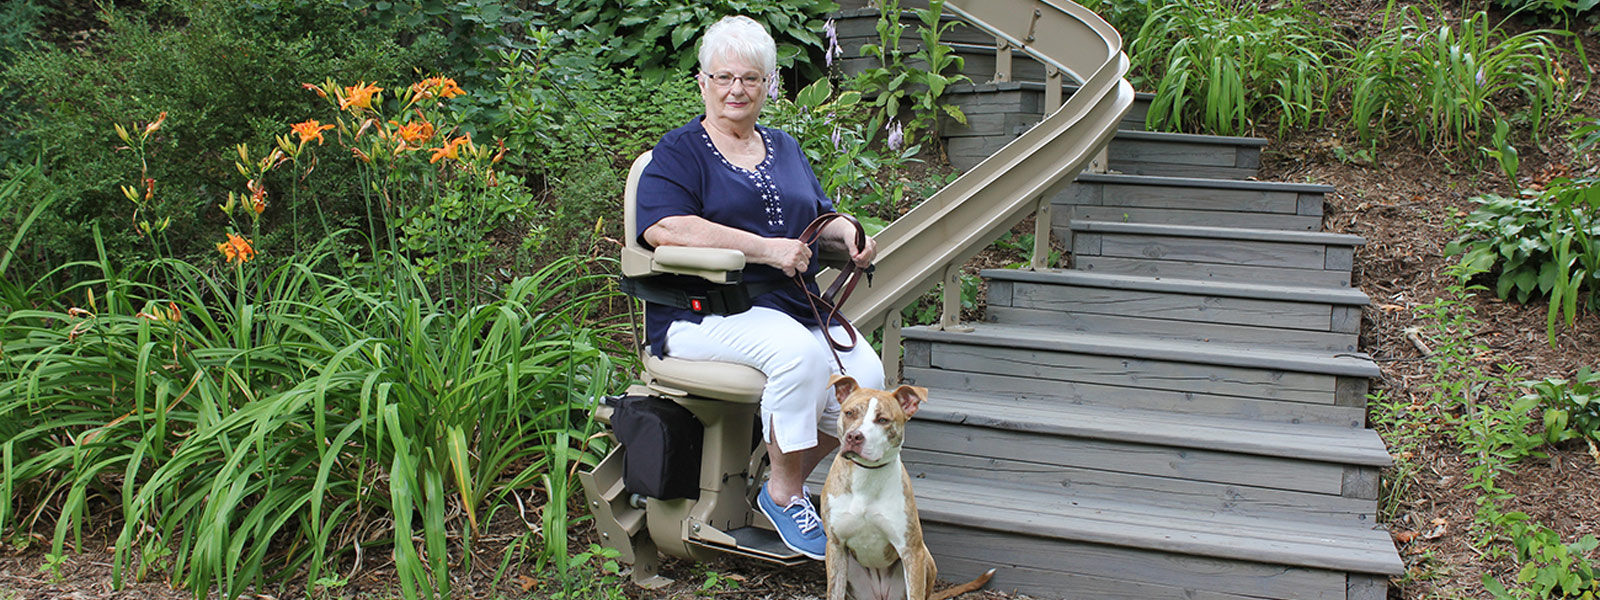 Elite outdoor curved stairlift 3 - Central Massachusetts Stairlifts